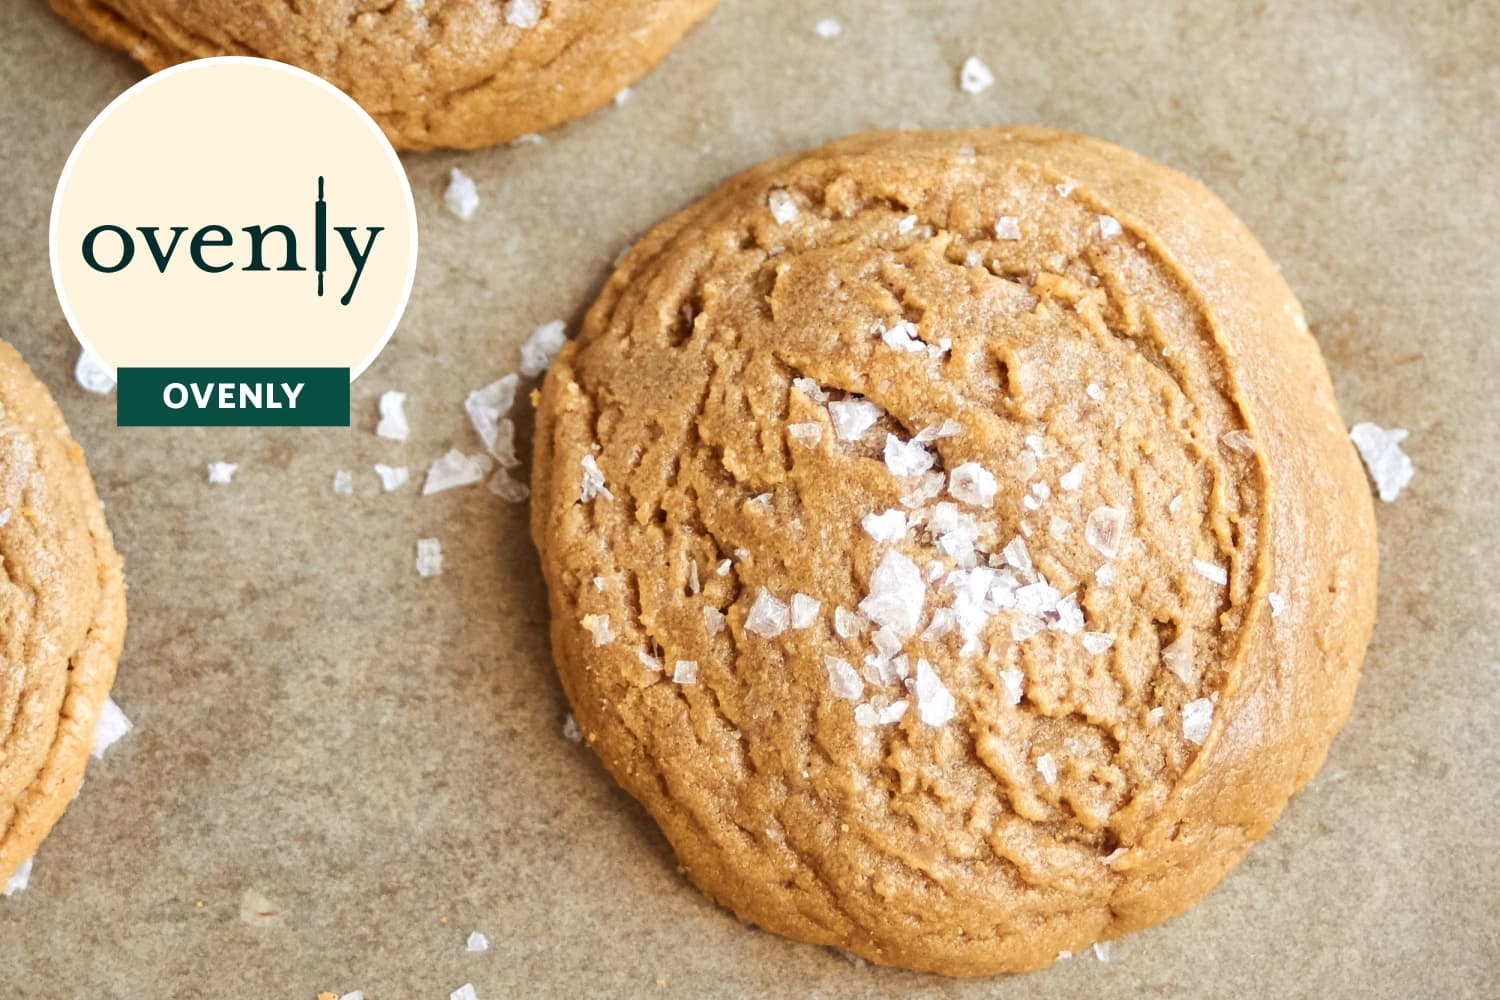 Ovenly's Internet-Famous Peanut Butter Cookies are 100% Worth the Hype